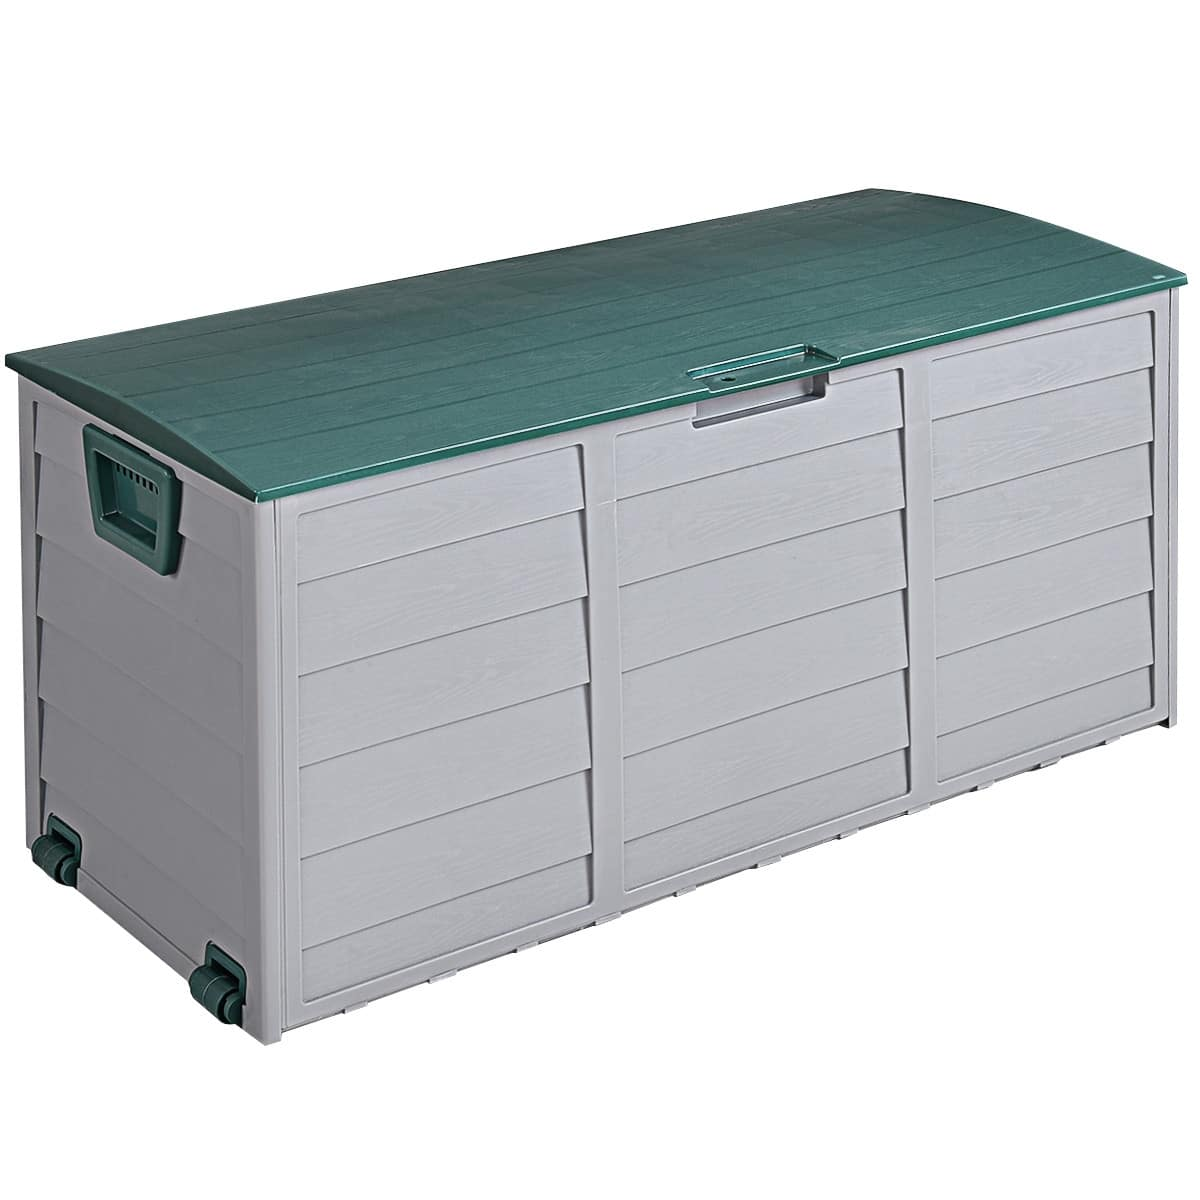 Costway 70-Gallon Durable Outdoor Plastic Storage Box-$47.95 + Free Shipping